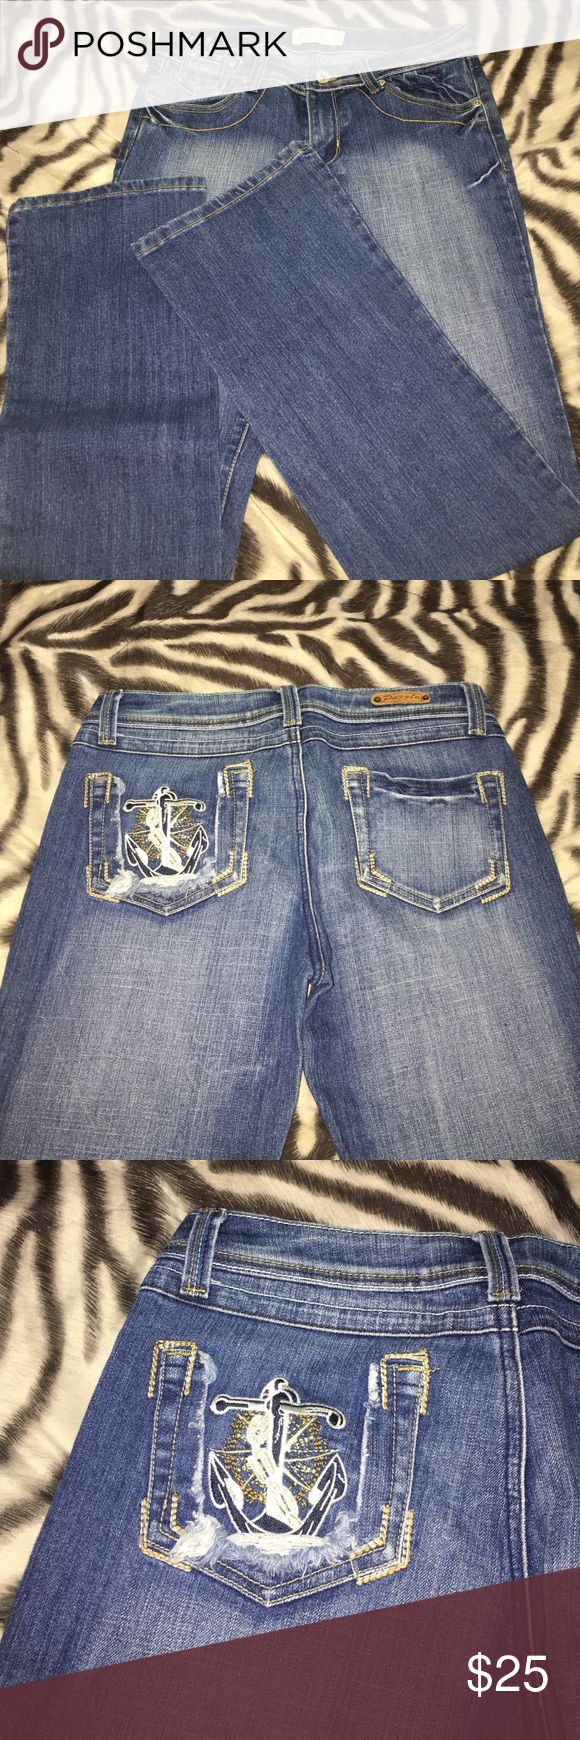 Cute Nautical Jeans Never worn! Too cute, I had a hard time parting with them! Boot cut with cute nautical detail on back left pocket Jeans Boot Cut